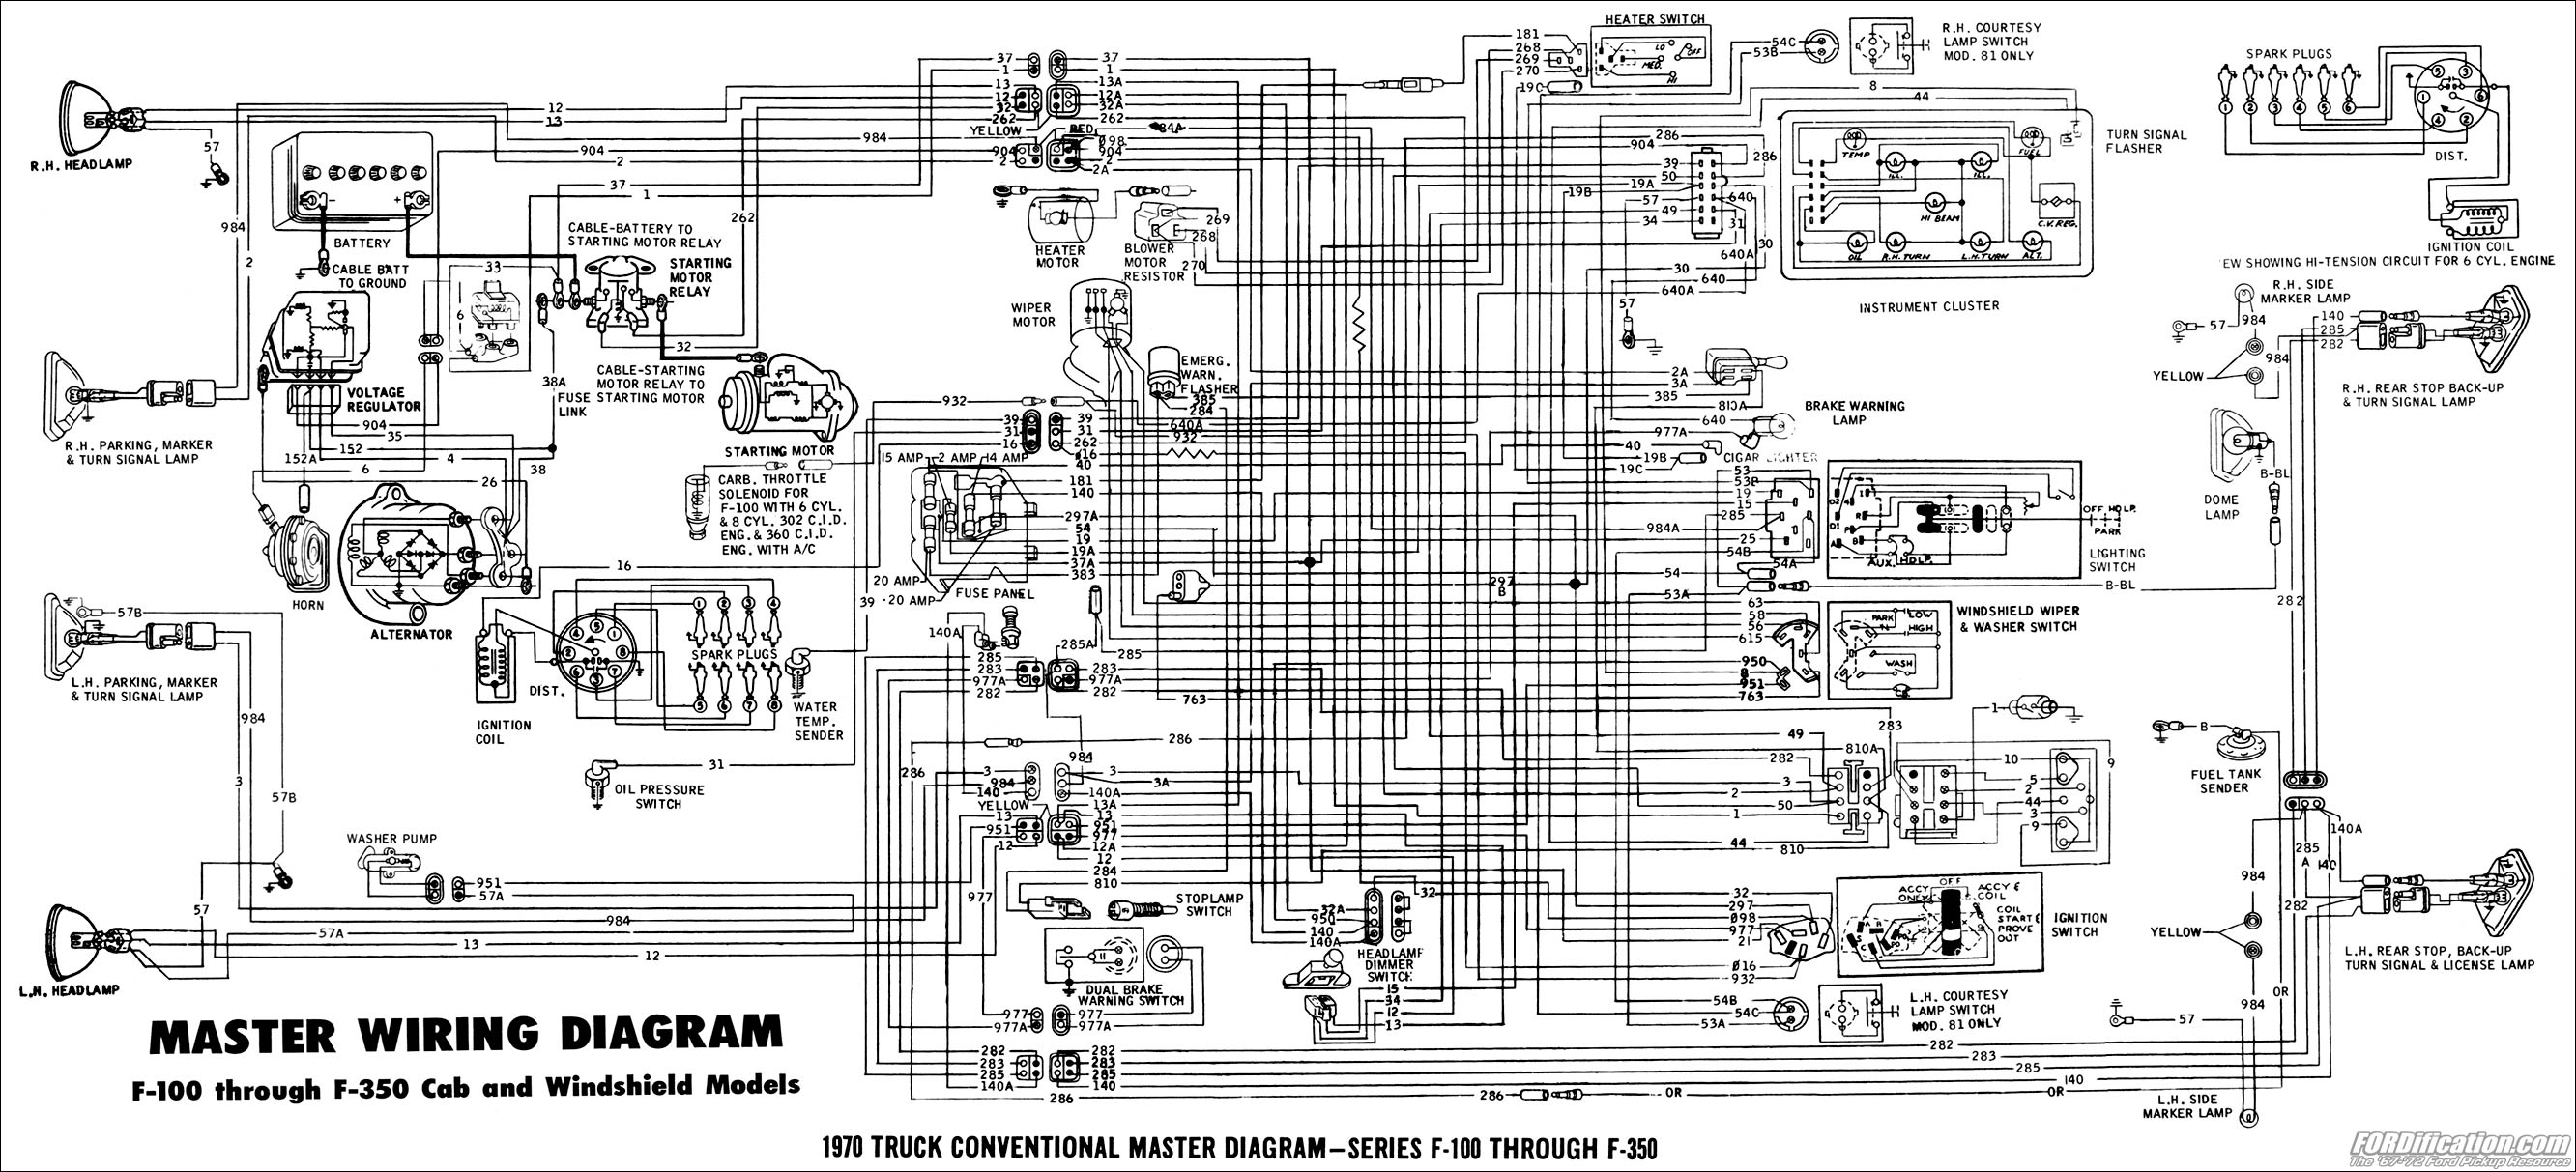 2005 F150 Fuel System Diagram Trusted Wiring 1996 Ford F 250 Pump 1989 Will Be A Thing U2022